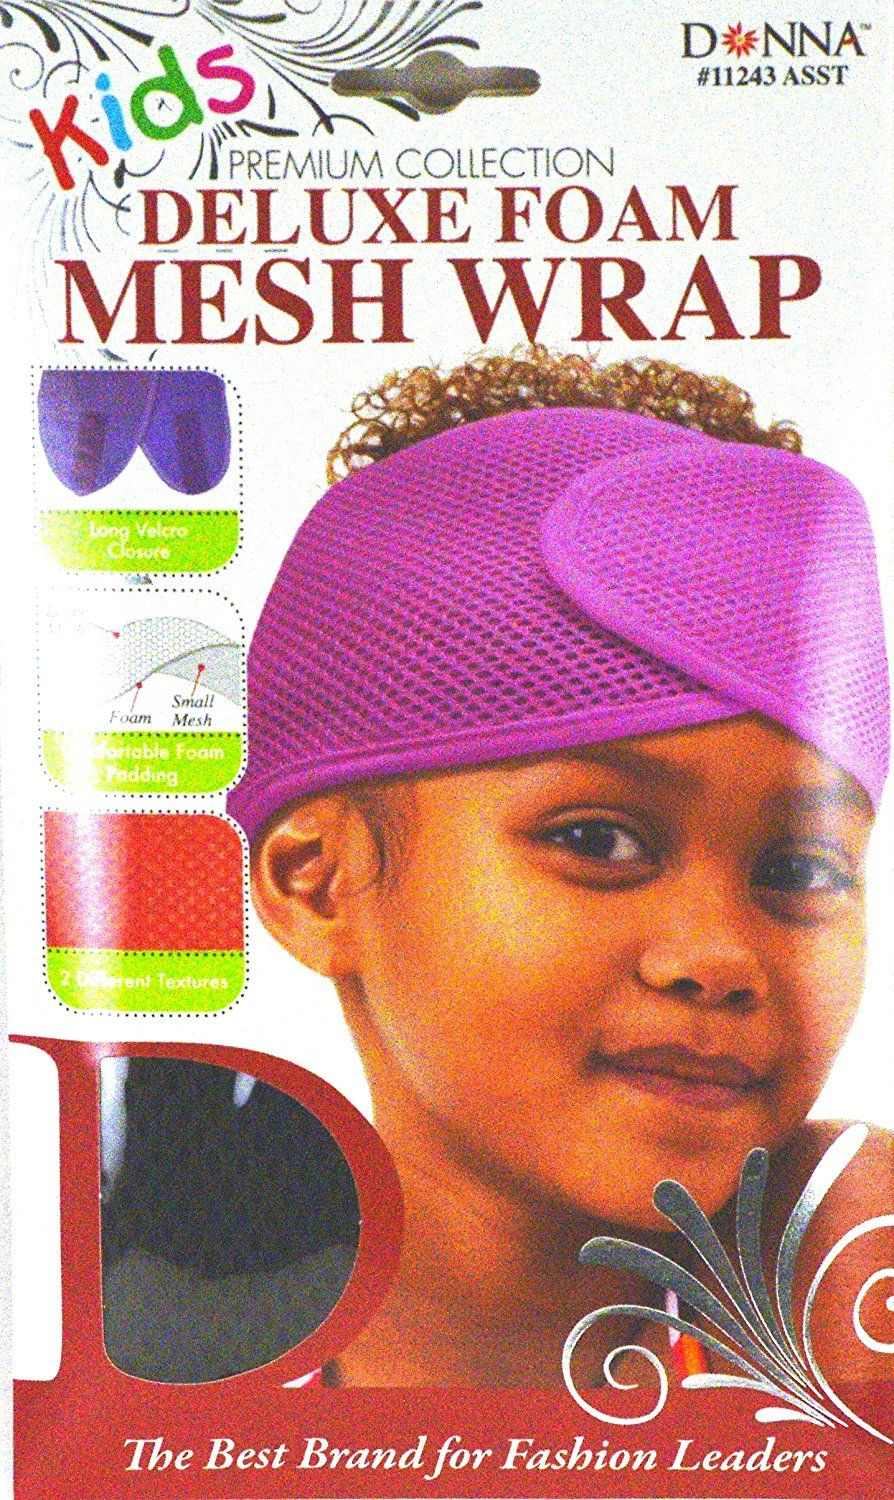 Donna Premium Collections Kids Deluxe Foam Mesh Wrap Brown 11243 >>> You can get more details by clicking on the image.